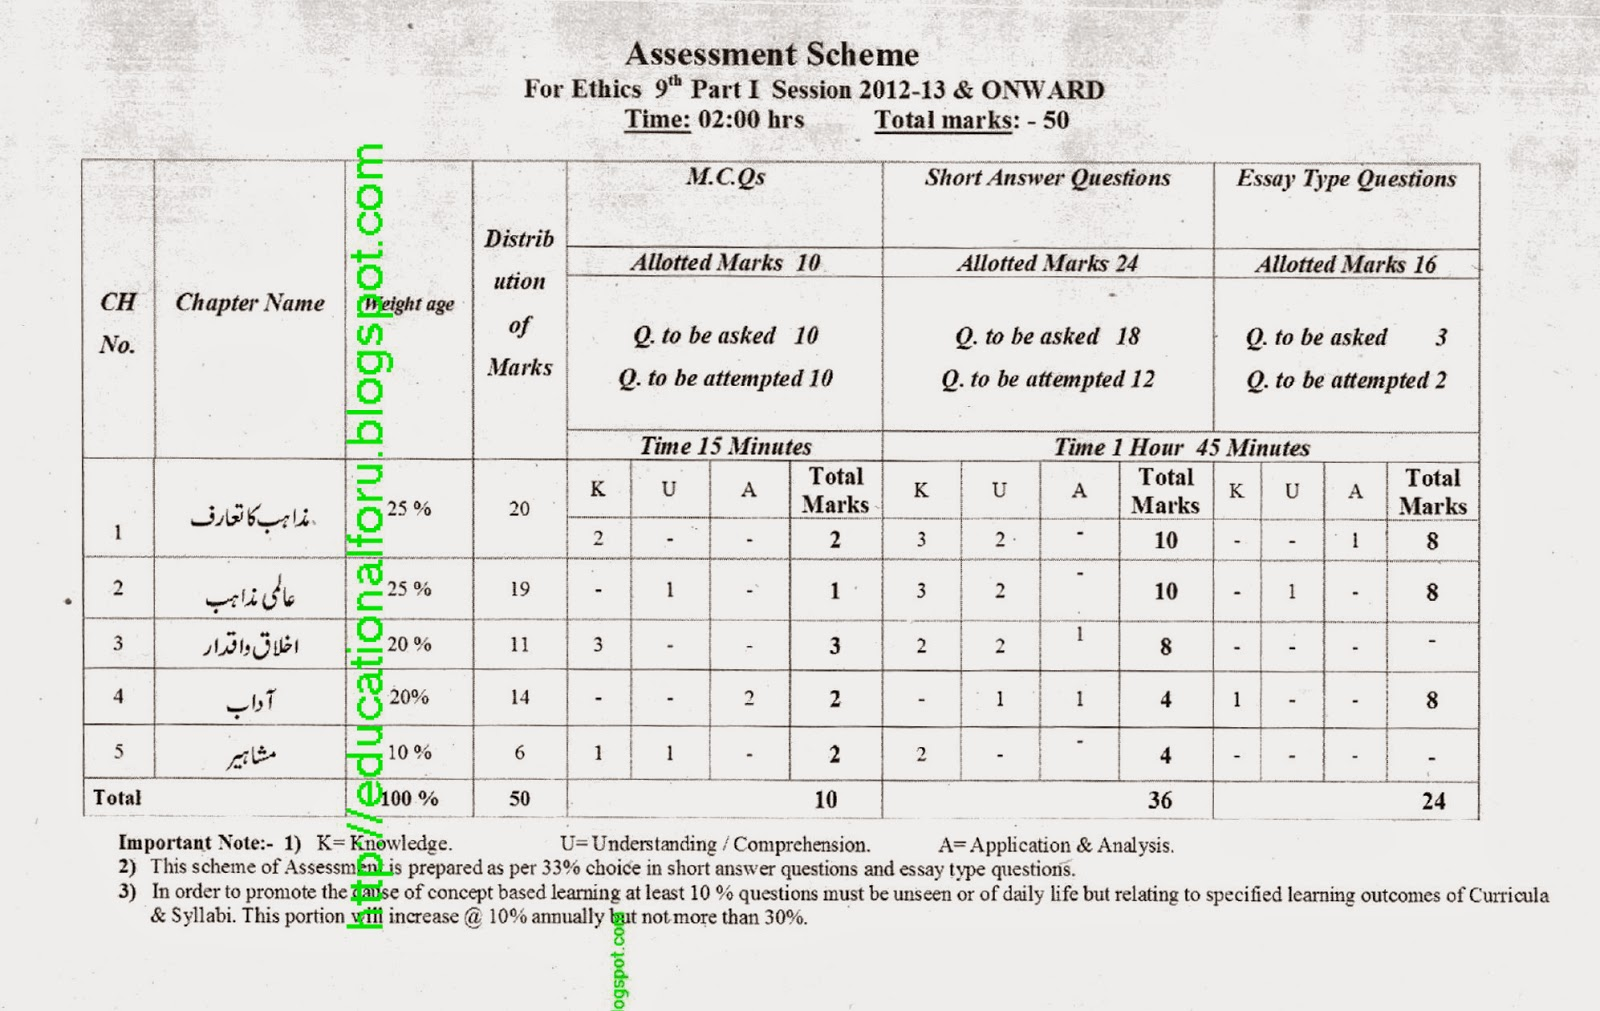 Education4all: Assessment Scheme of Ethics 9th Class 2015